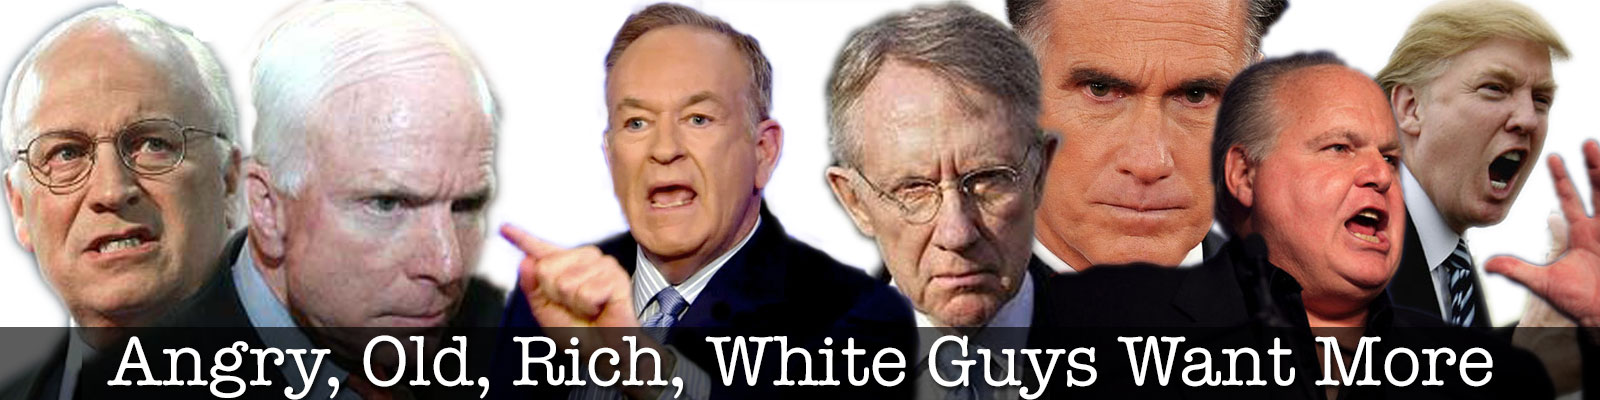 Angry, Old, Rich, White Men